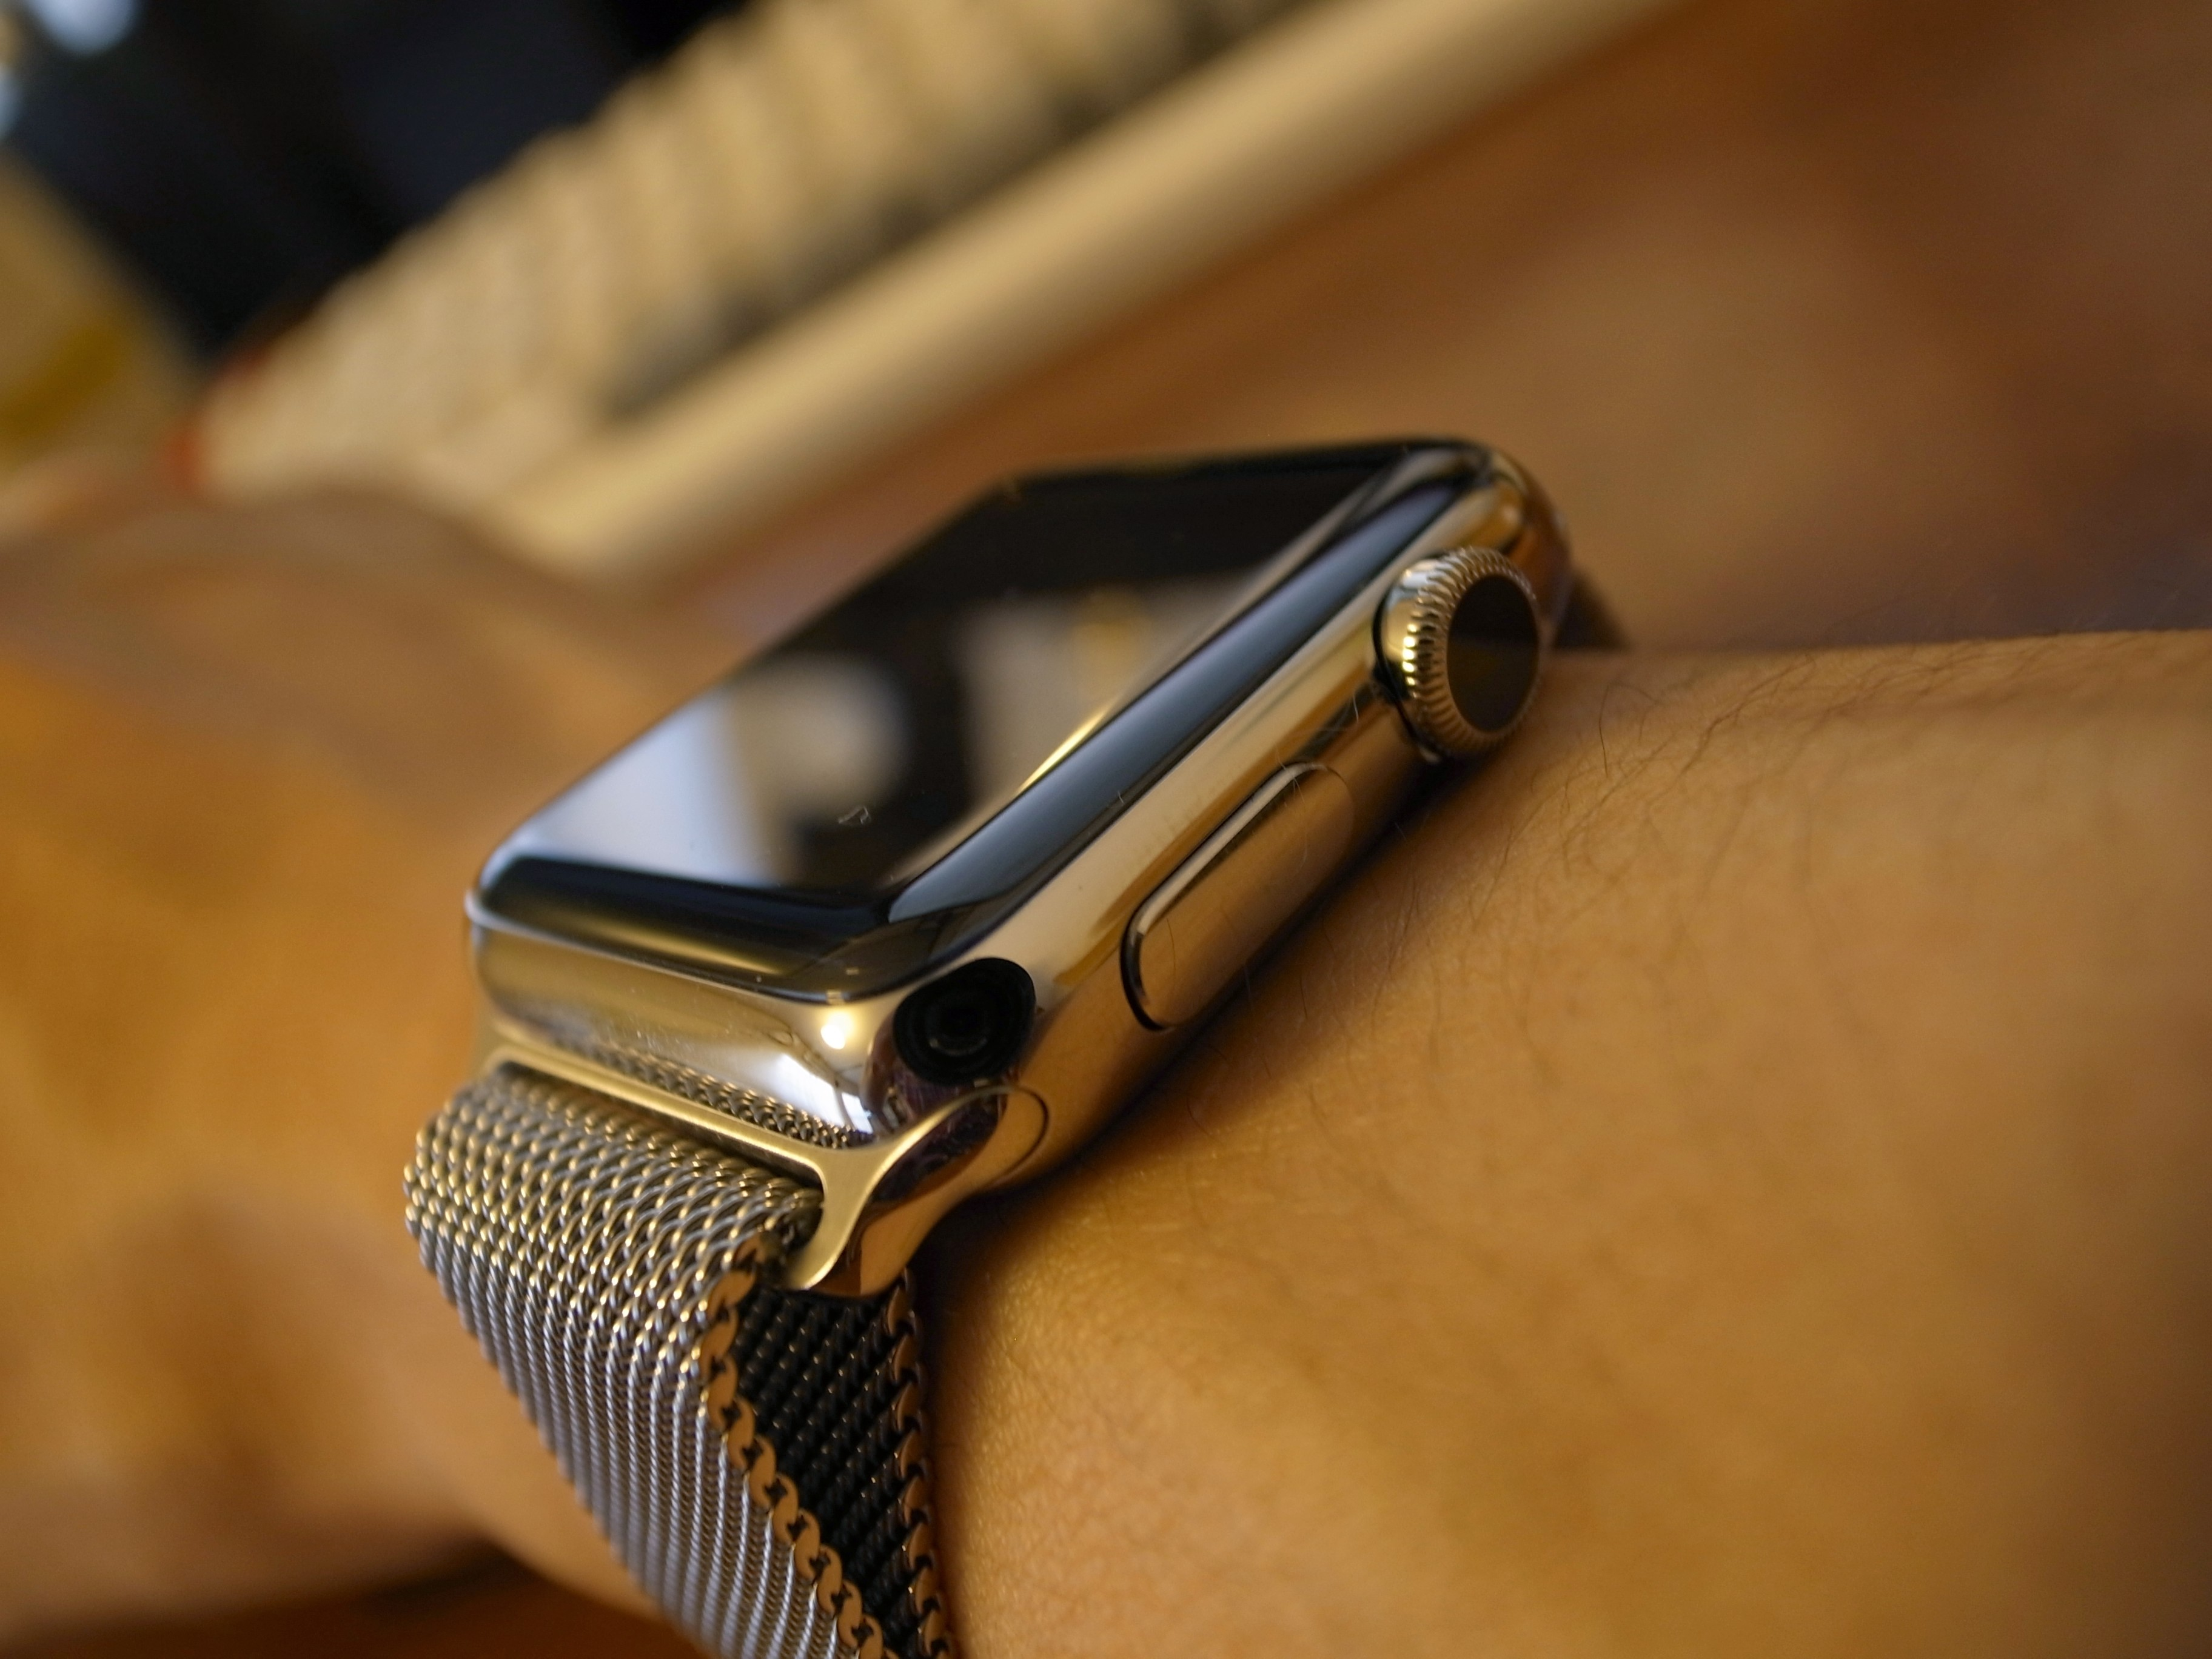 0792-201505_AppleWatch 02